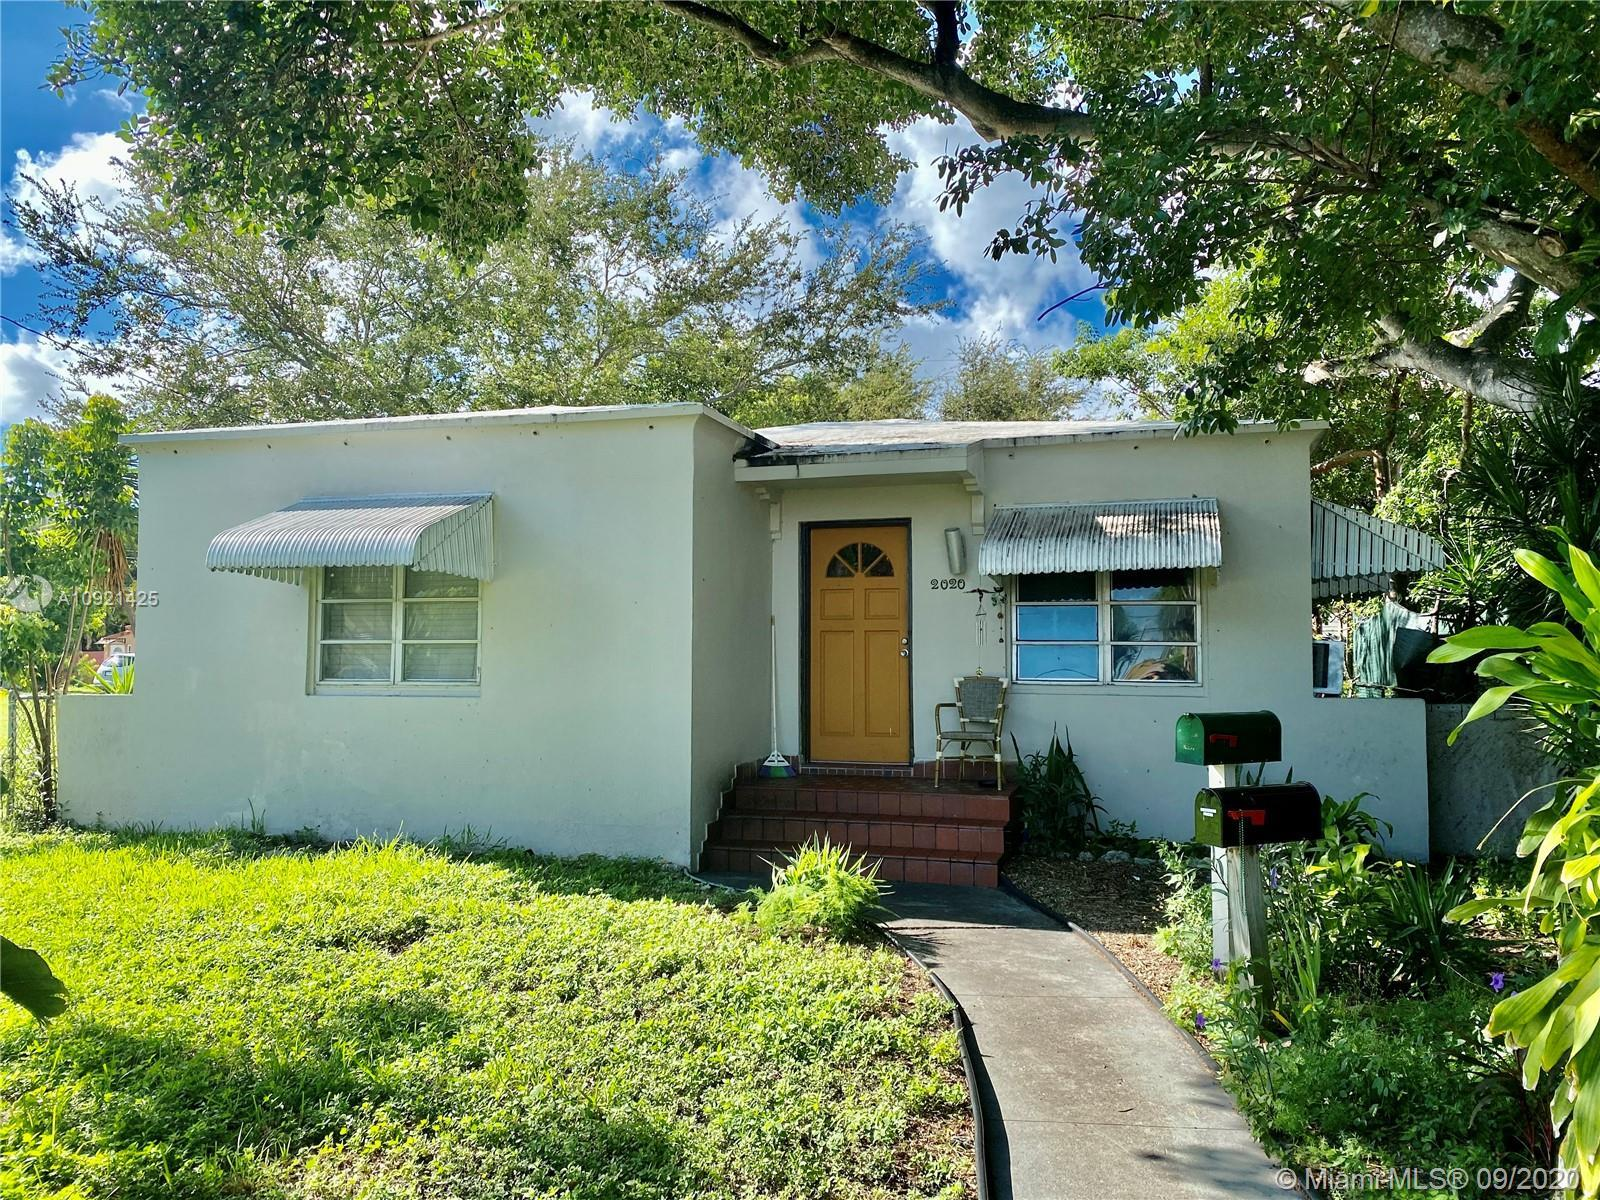 Single family w/detached studio located in a High Density Mixed-Use District zoned DH-3; an ideal, r